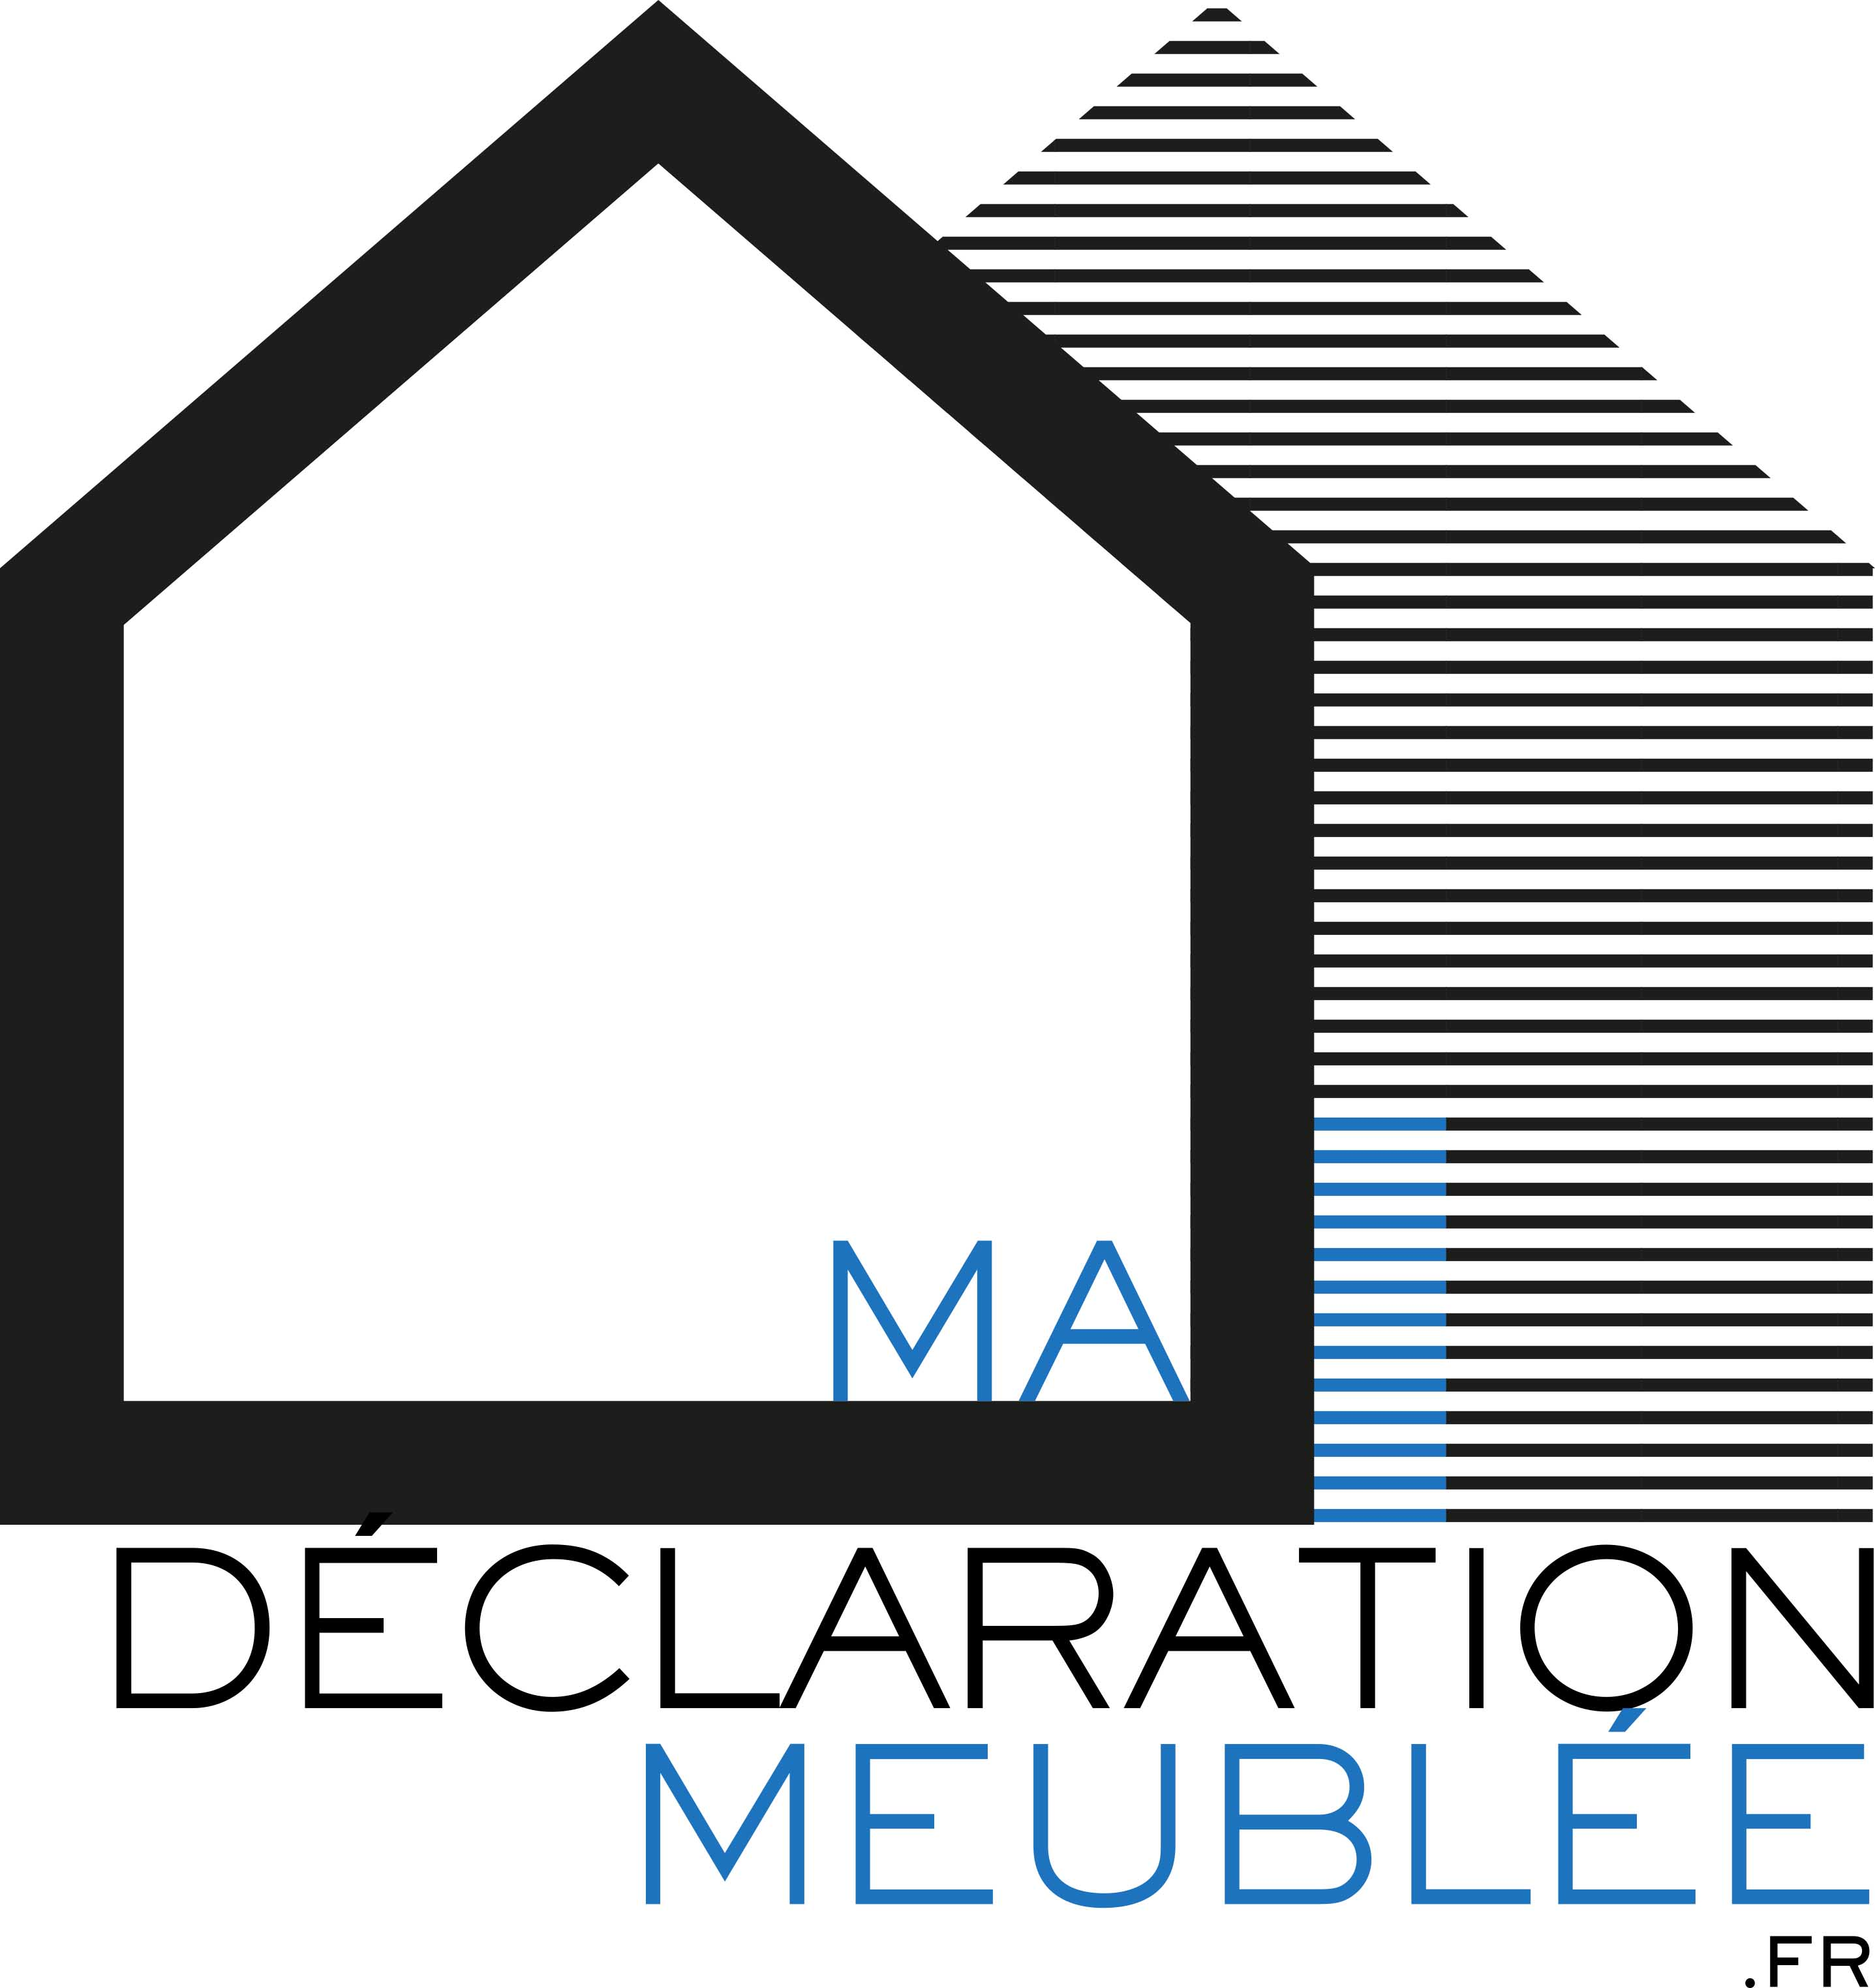 logo mdmeublee ma declaration meublee. Black Bedroom Furniture Sets. Home Design Ideas